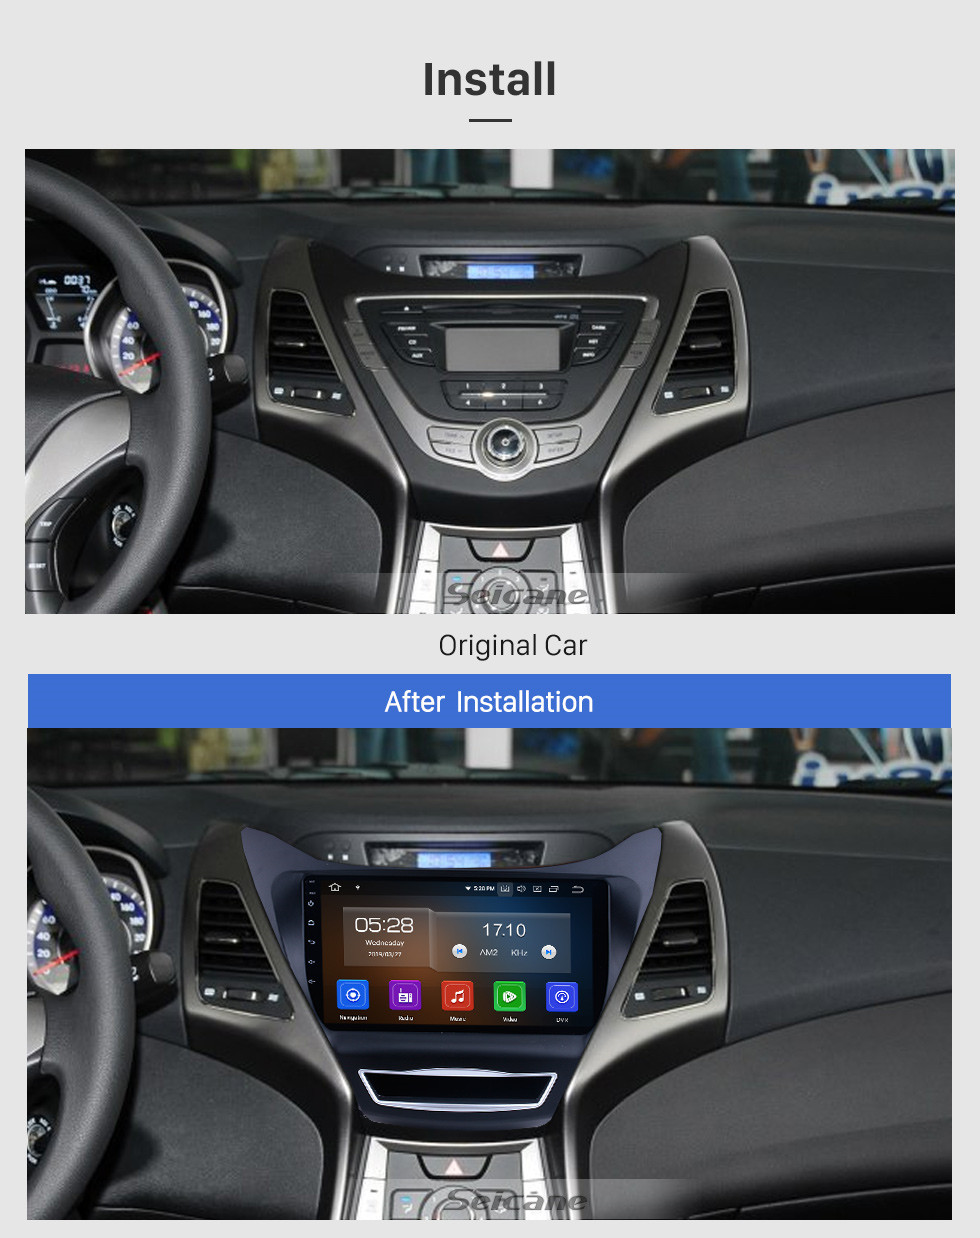 Radio Wiring Diagram Together With 2013 Hyundai Elantra Wiring Diagram